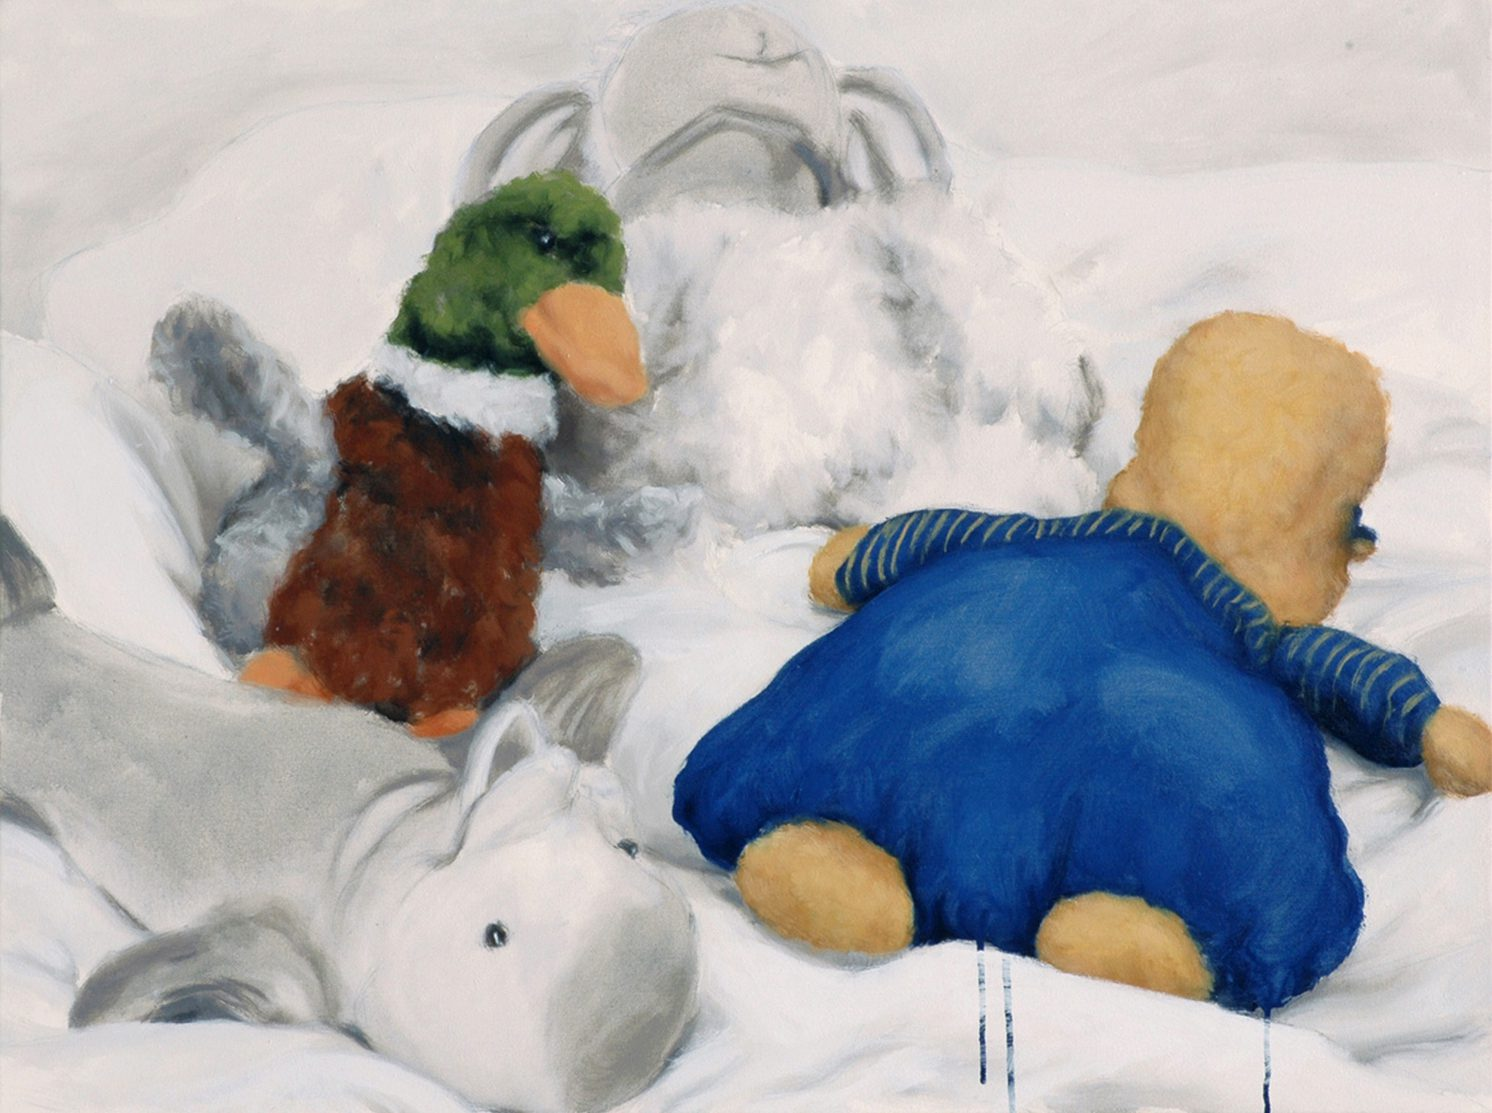 Martina Büttner: Painting, family #3, 2007